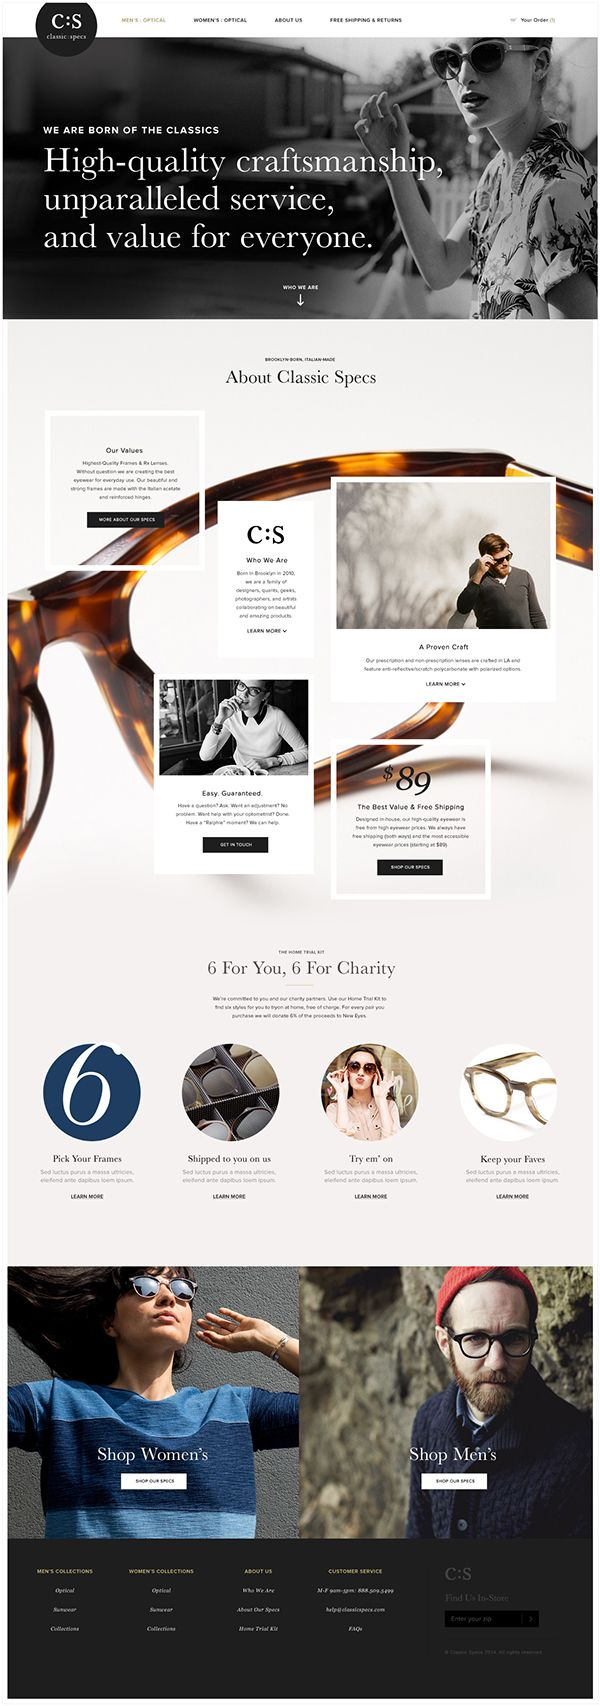 C:S Redesign by Joshua Long, via Behance